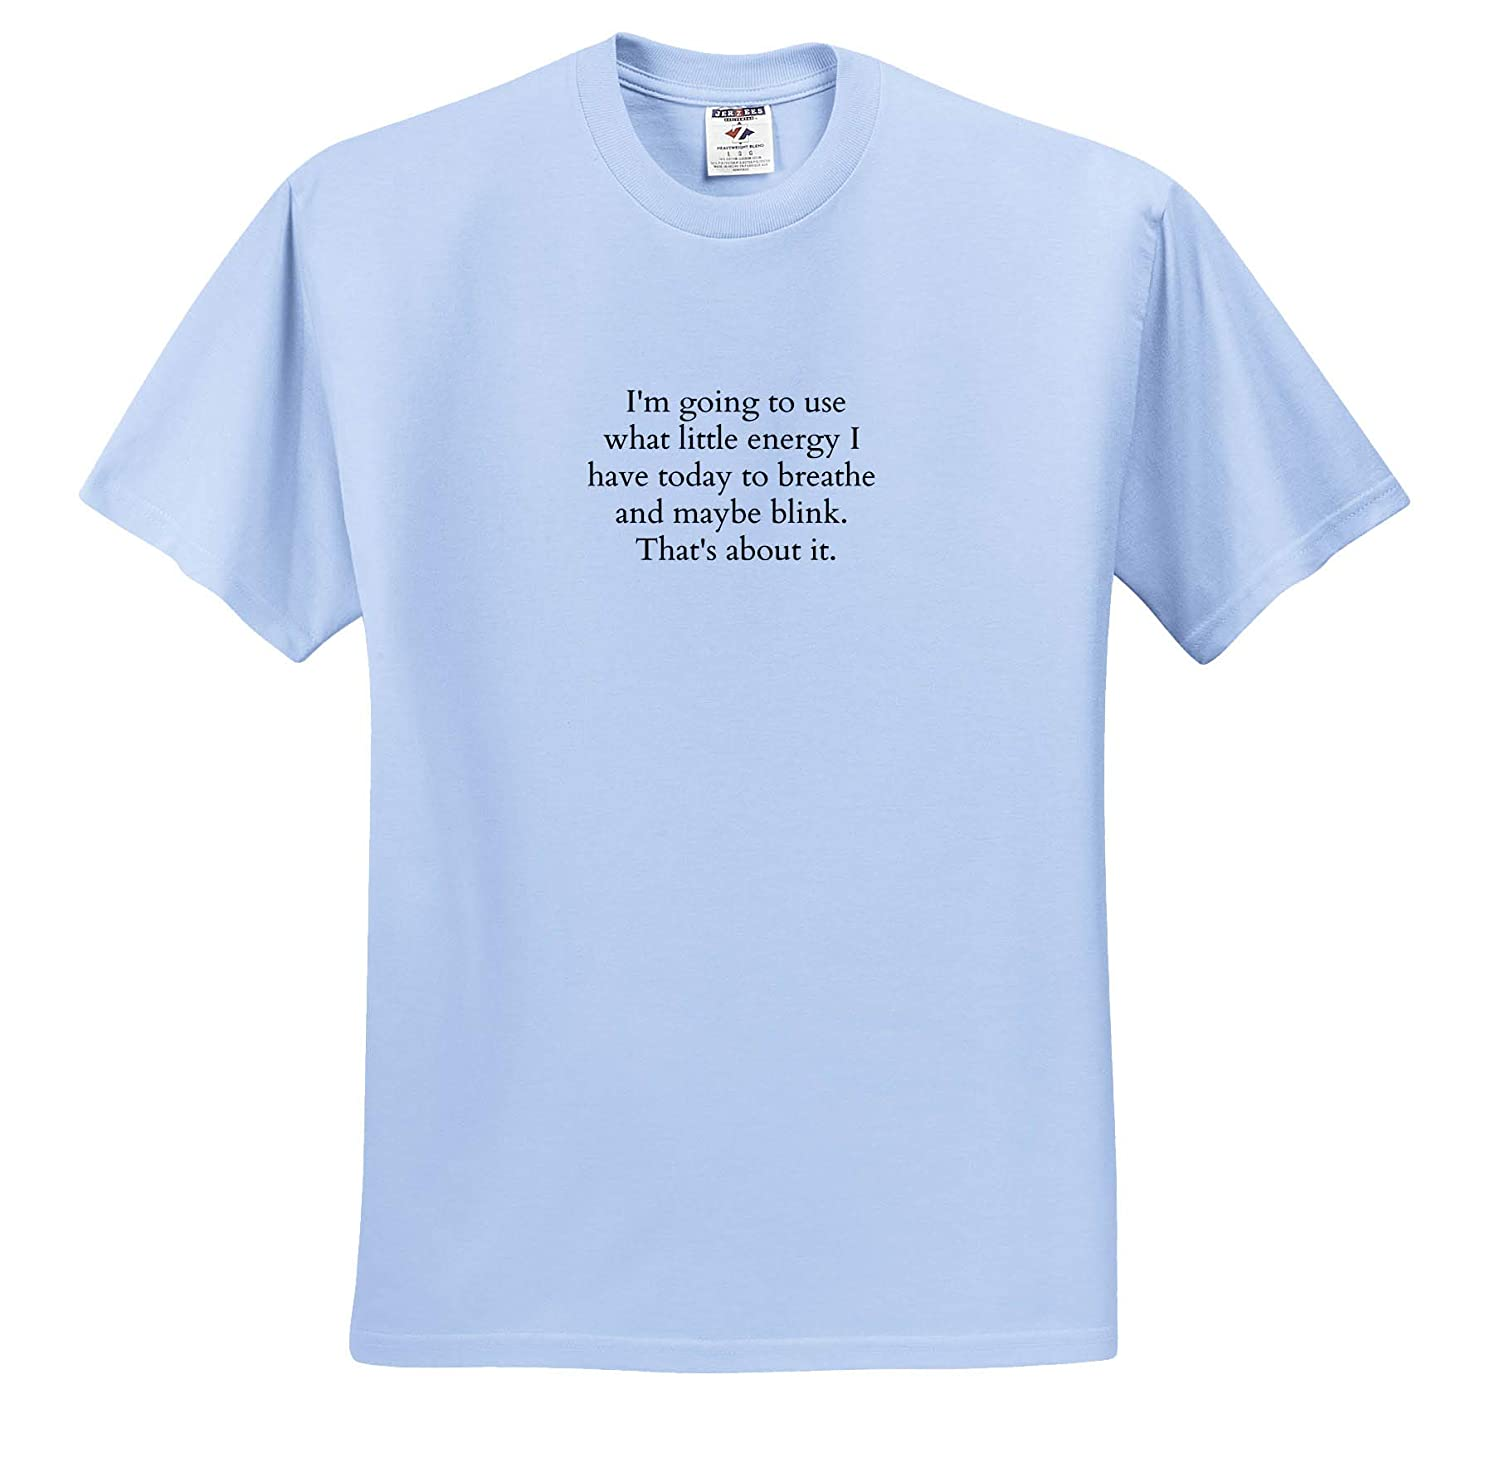 3dRose Nicole R ts/_310913 Adult T-Shirt XL - Quote Image of Im Going to Use What Little Energy I Have Today to Breathe